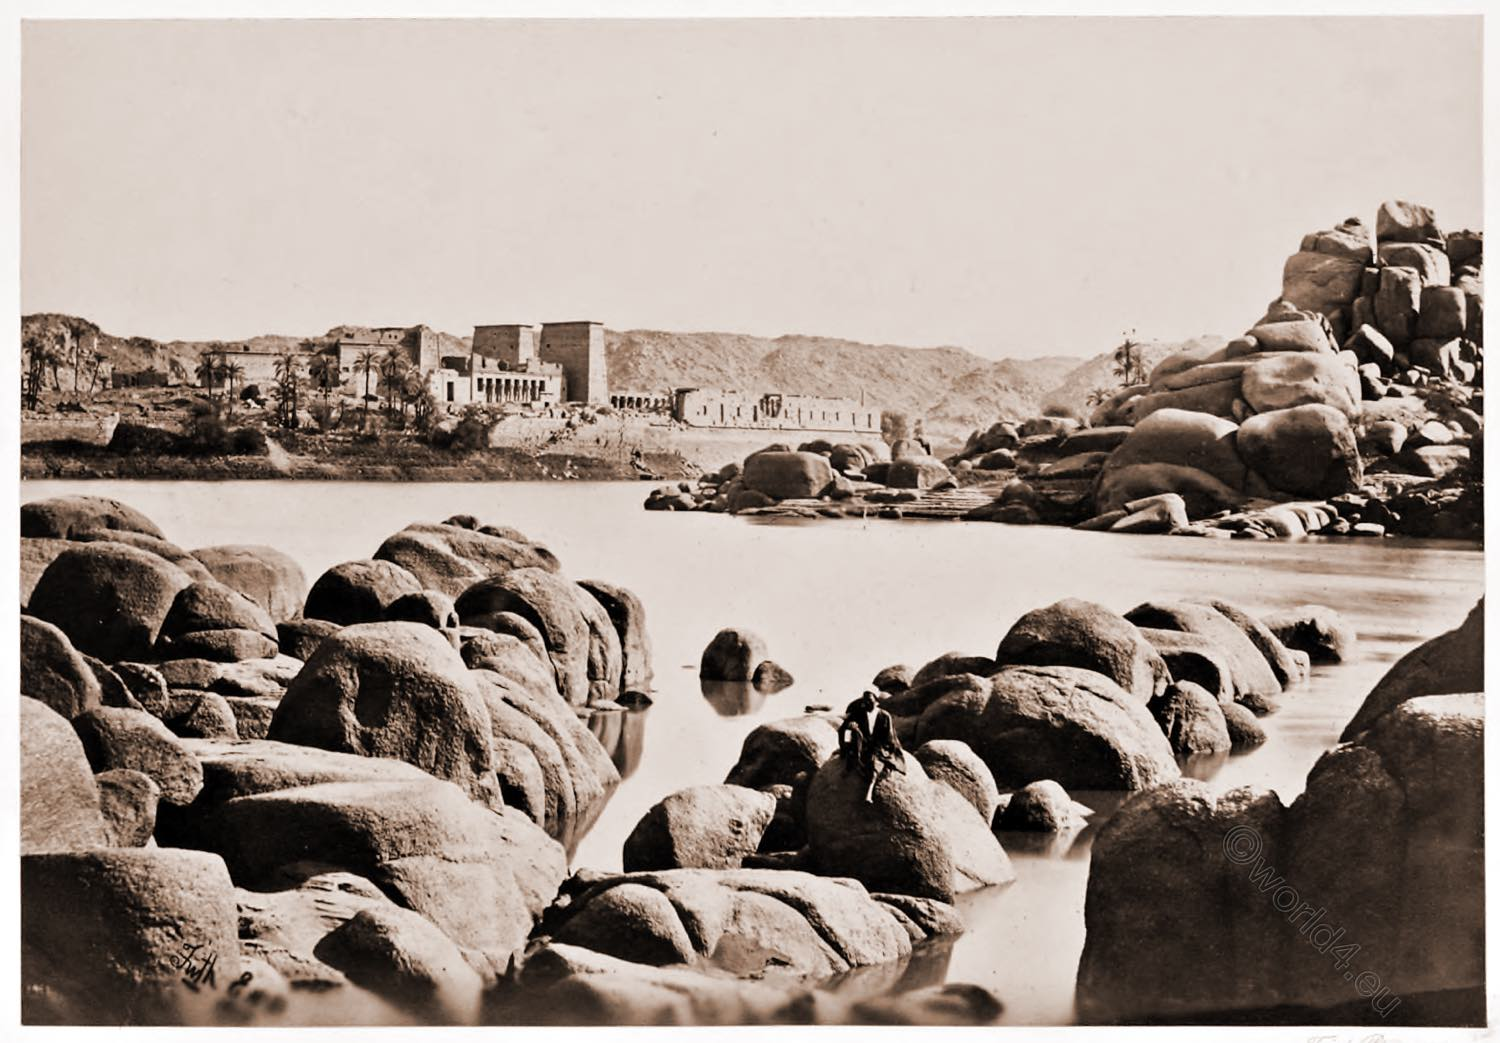 Philae, Approach, Egypt, Tempel, Aswan, landscape, Architecture, Francis Frith, Historical photograph, view